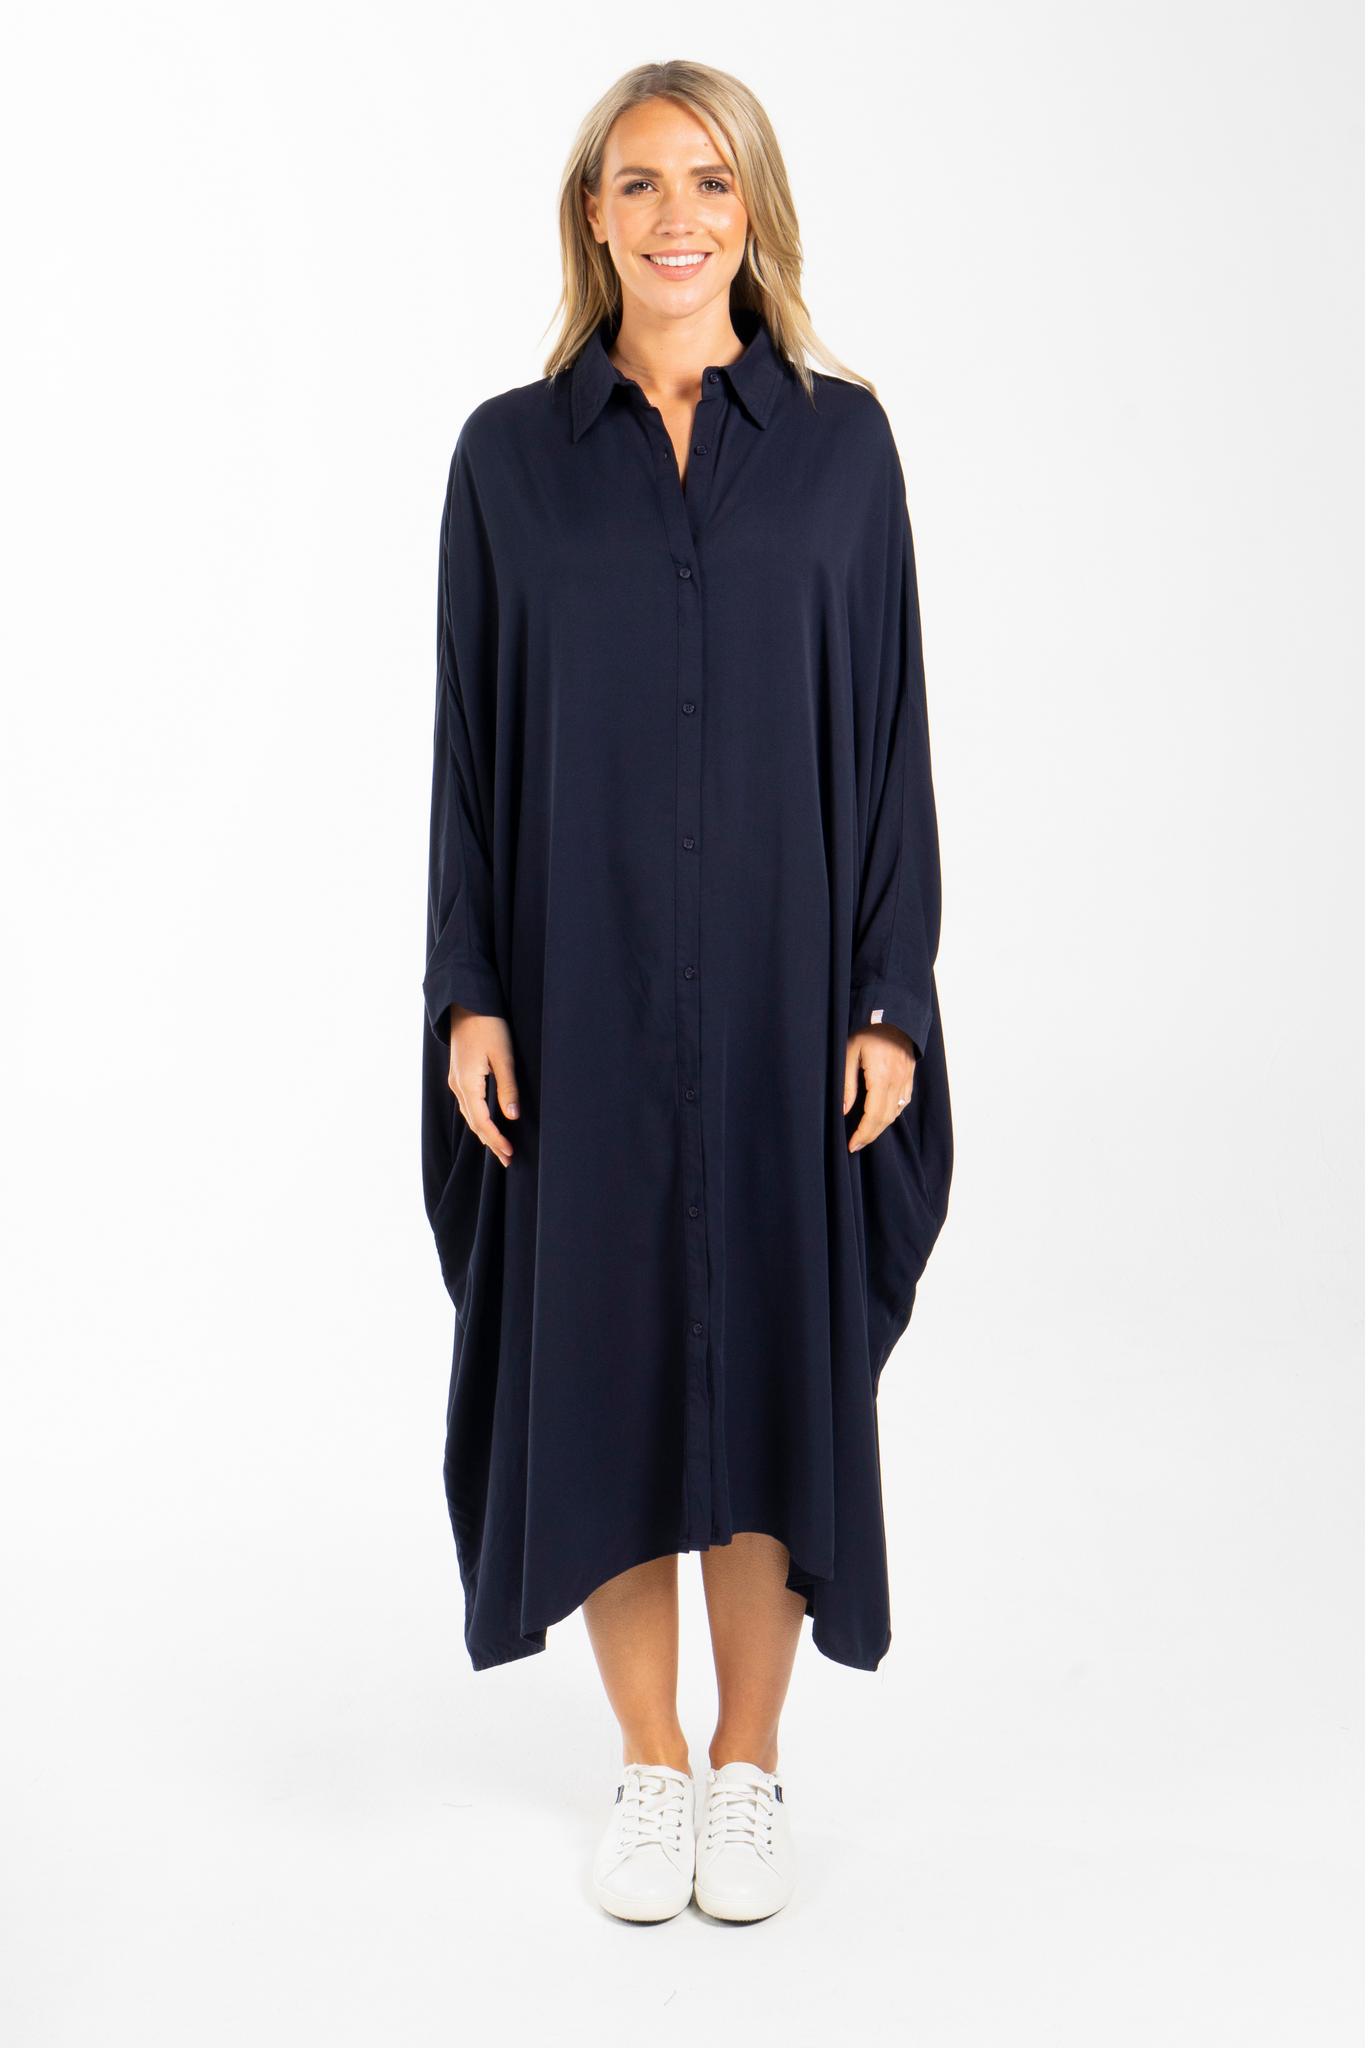 Miracle Shirt Dress in Navy